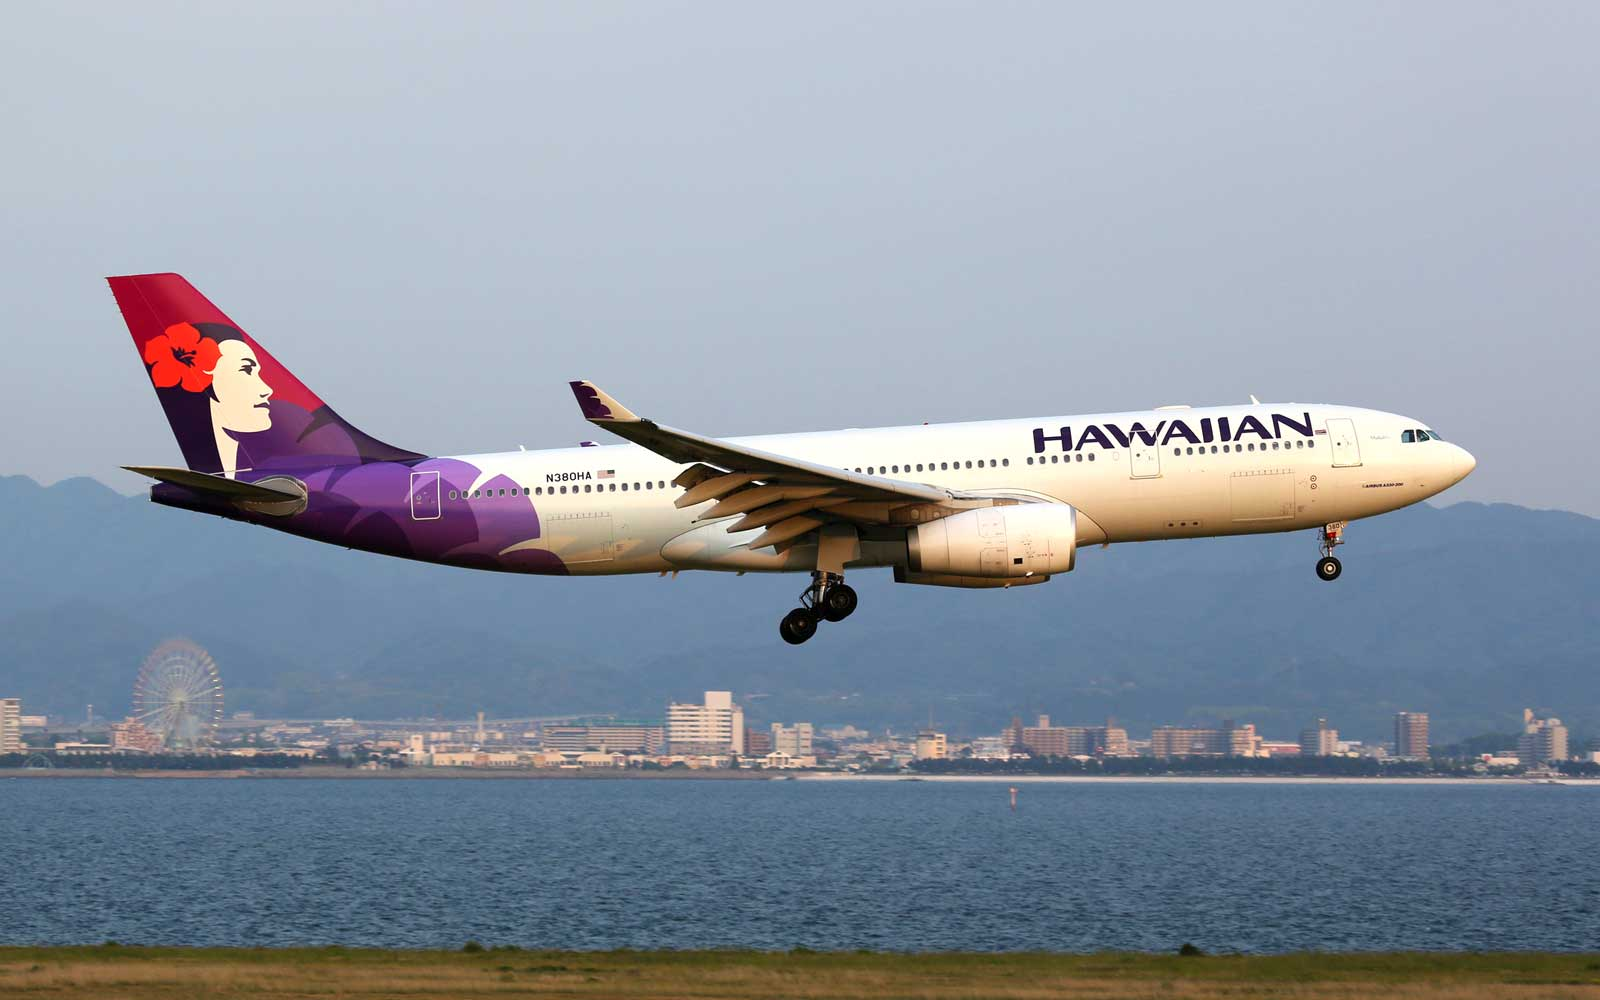 Unruly Passengers Force Hawaiian Airlines Flight to Turn Back 2 Hours Into Trip